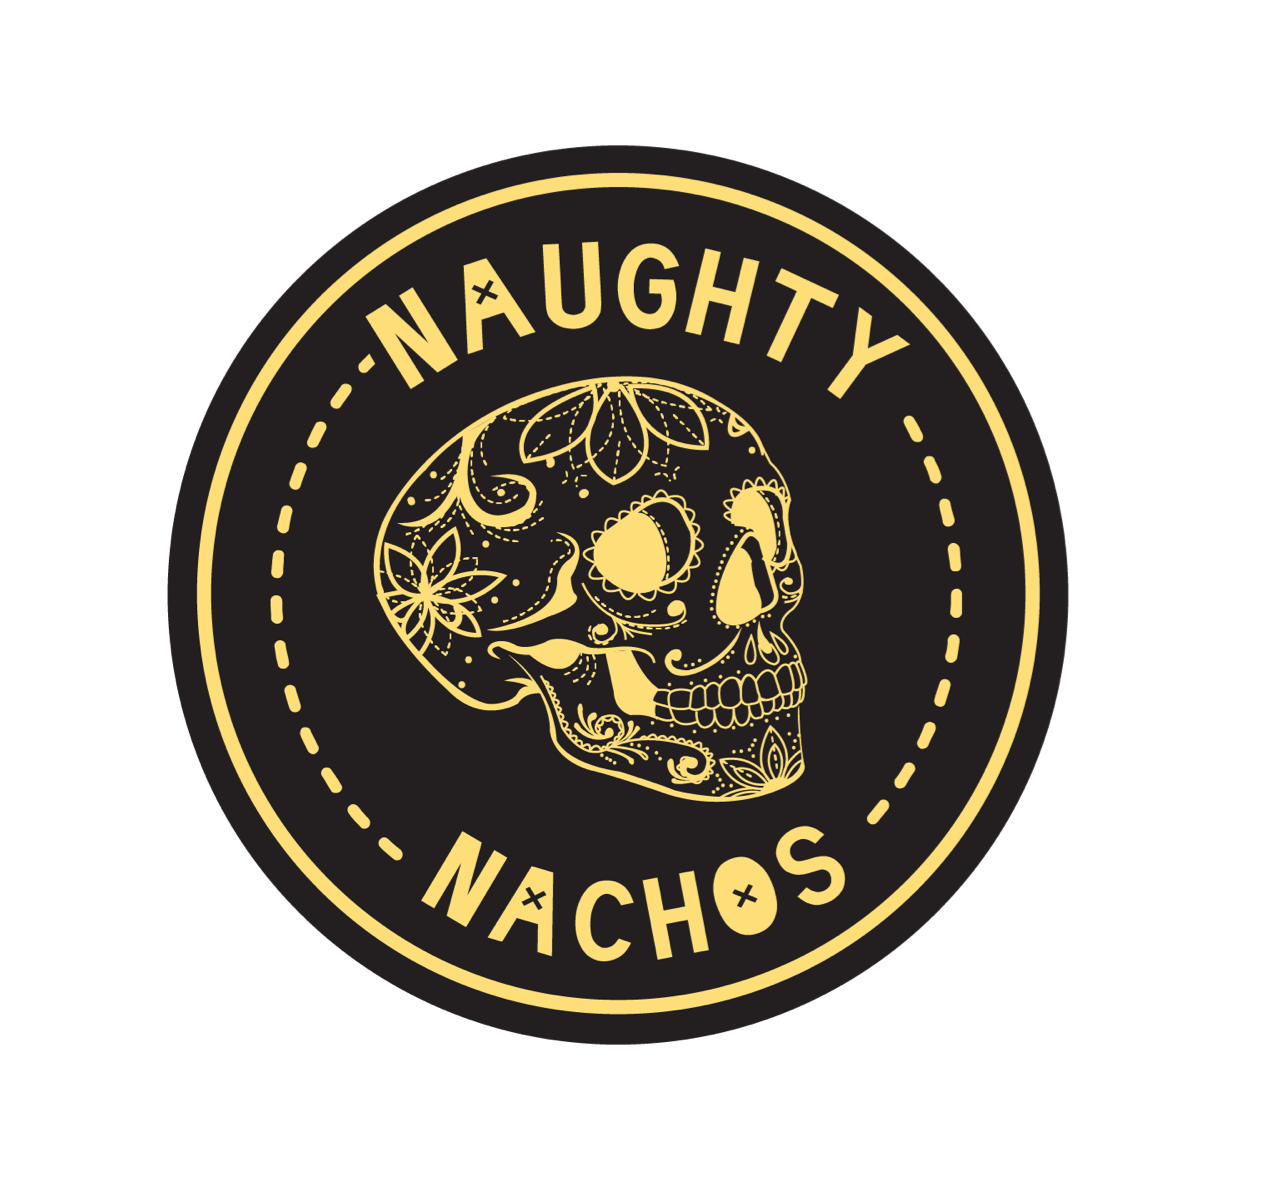 Naughty Nachos